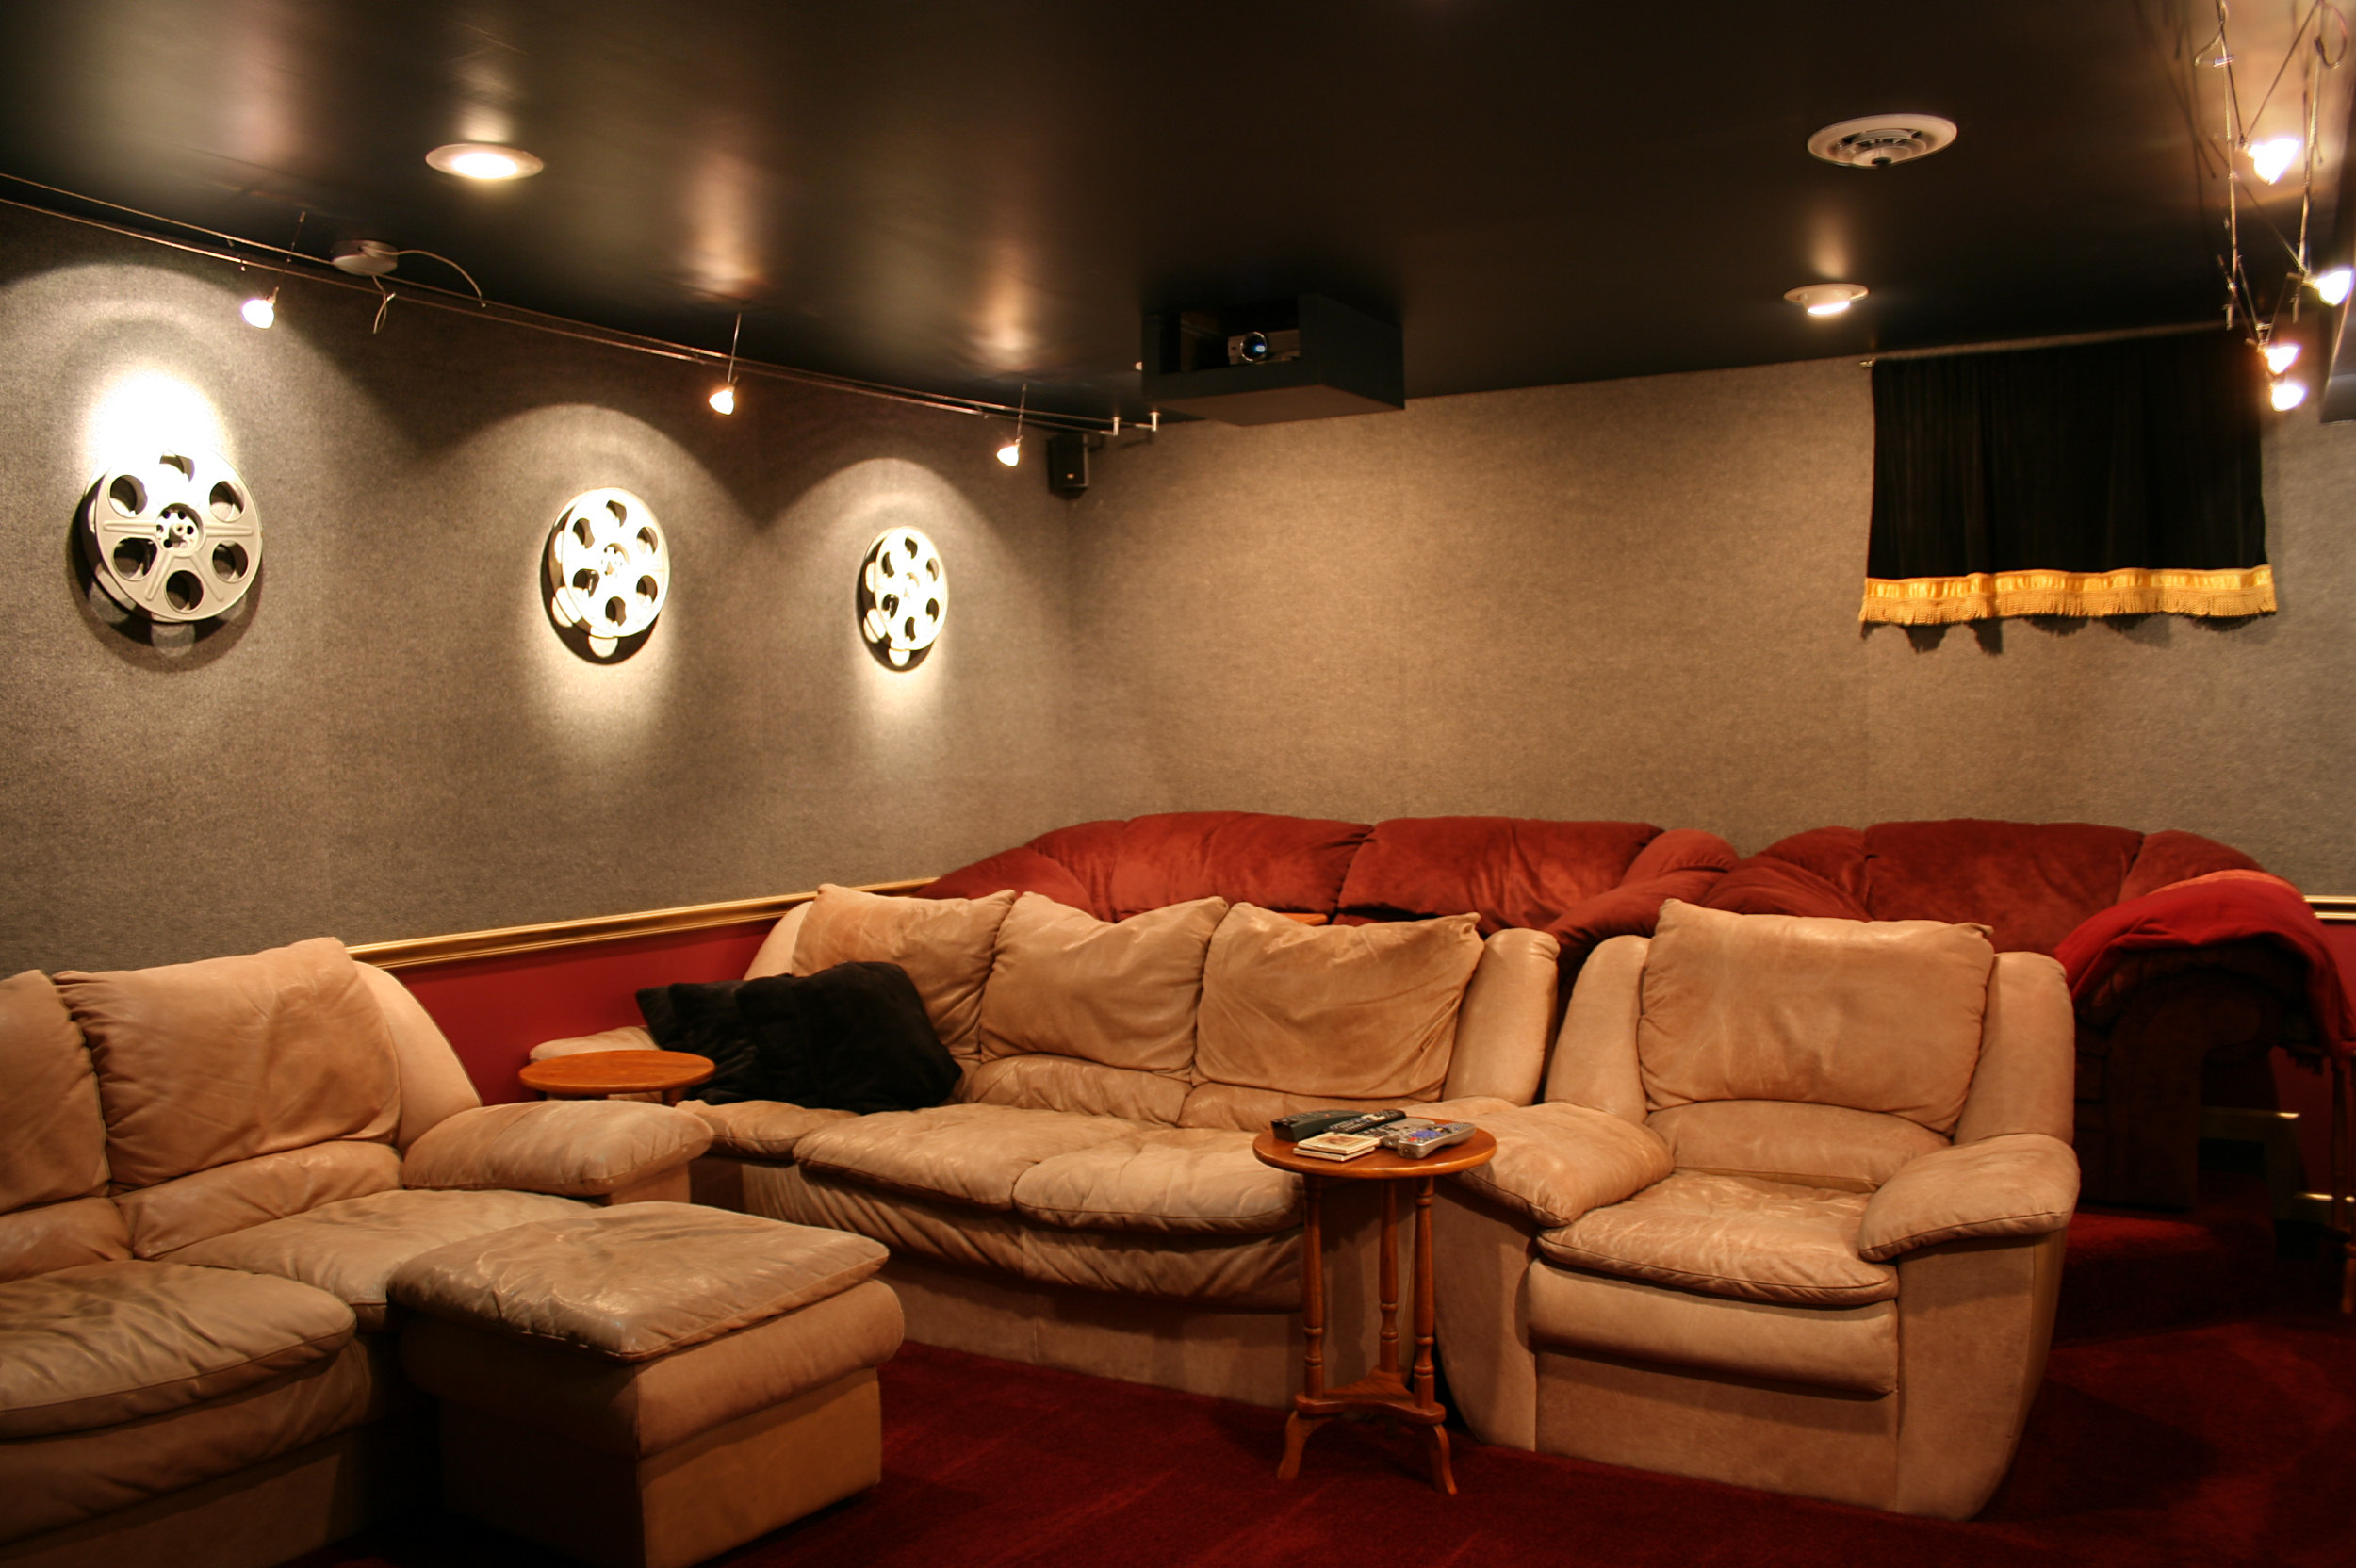 dallas tx as long time dallas texas realtors one common question that weve had from homeowners is if a home theater adds or decreases a homes value